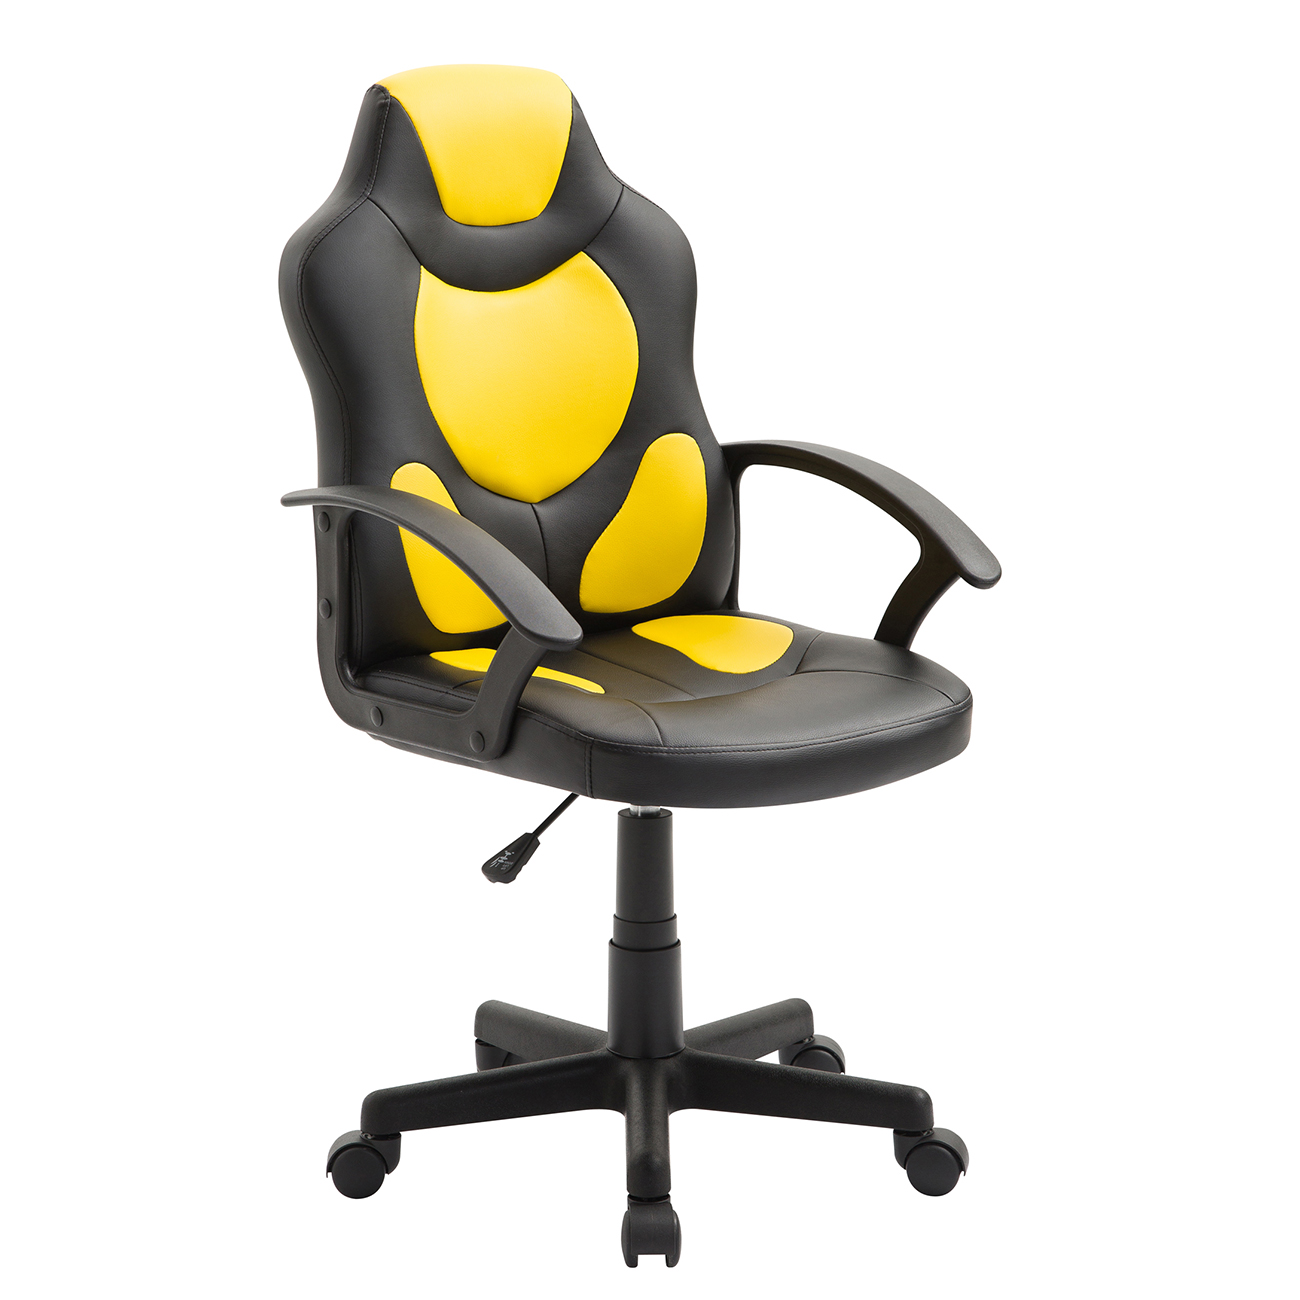 Techni Mobili Kidu0027s Gaming and Racing Chair with Wheels Yellow - Walmart.com  sc 1 st  Walmart & Techni Mobili Kidu0027s Gaming and Racing Chair with Wheels Yellow ...